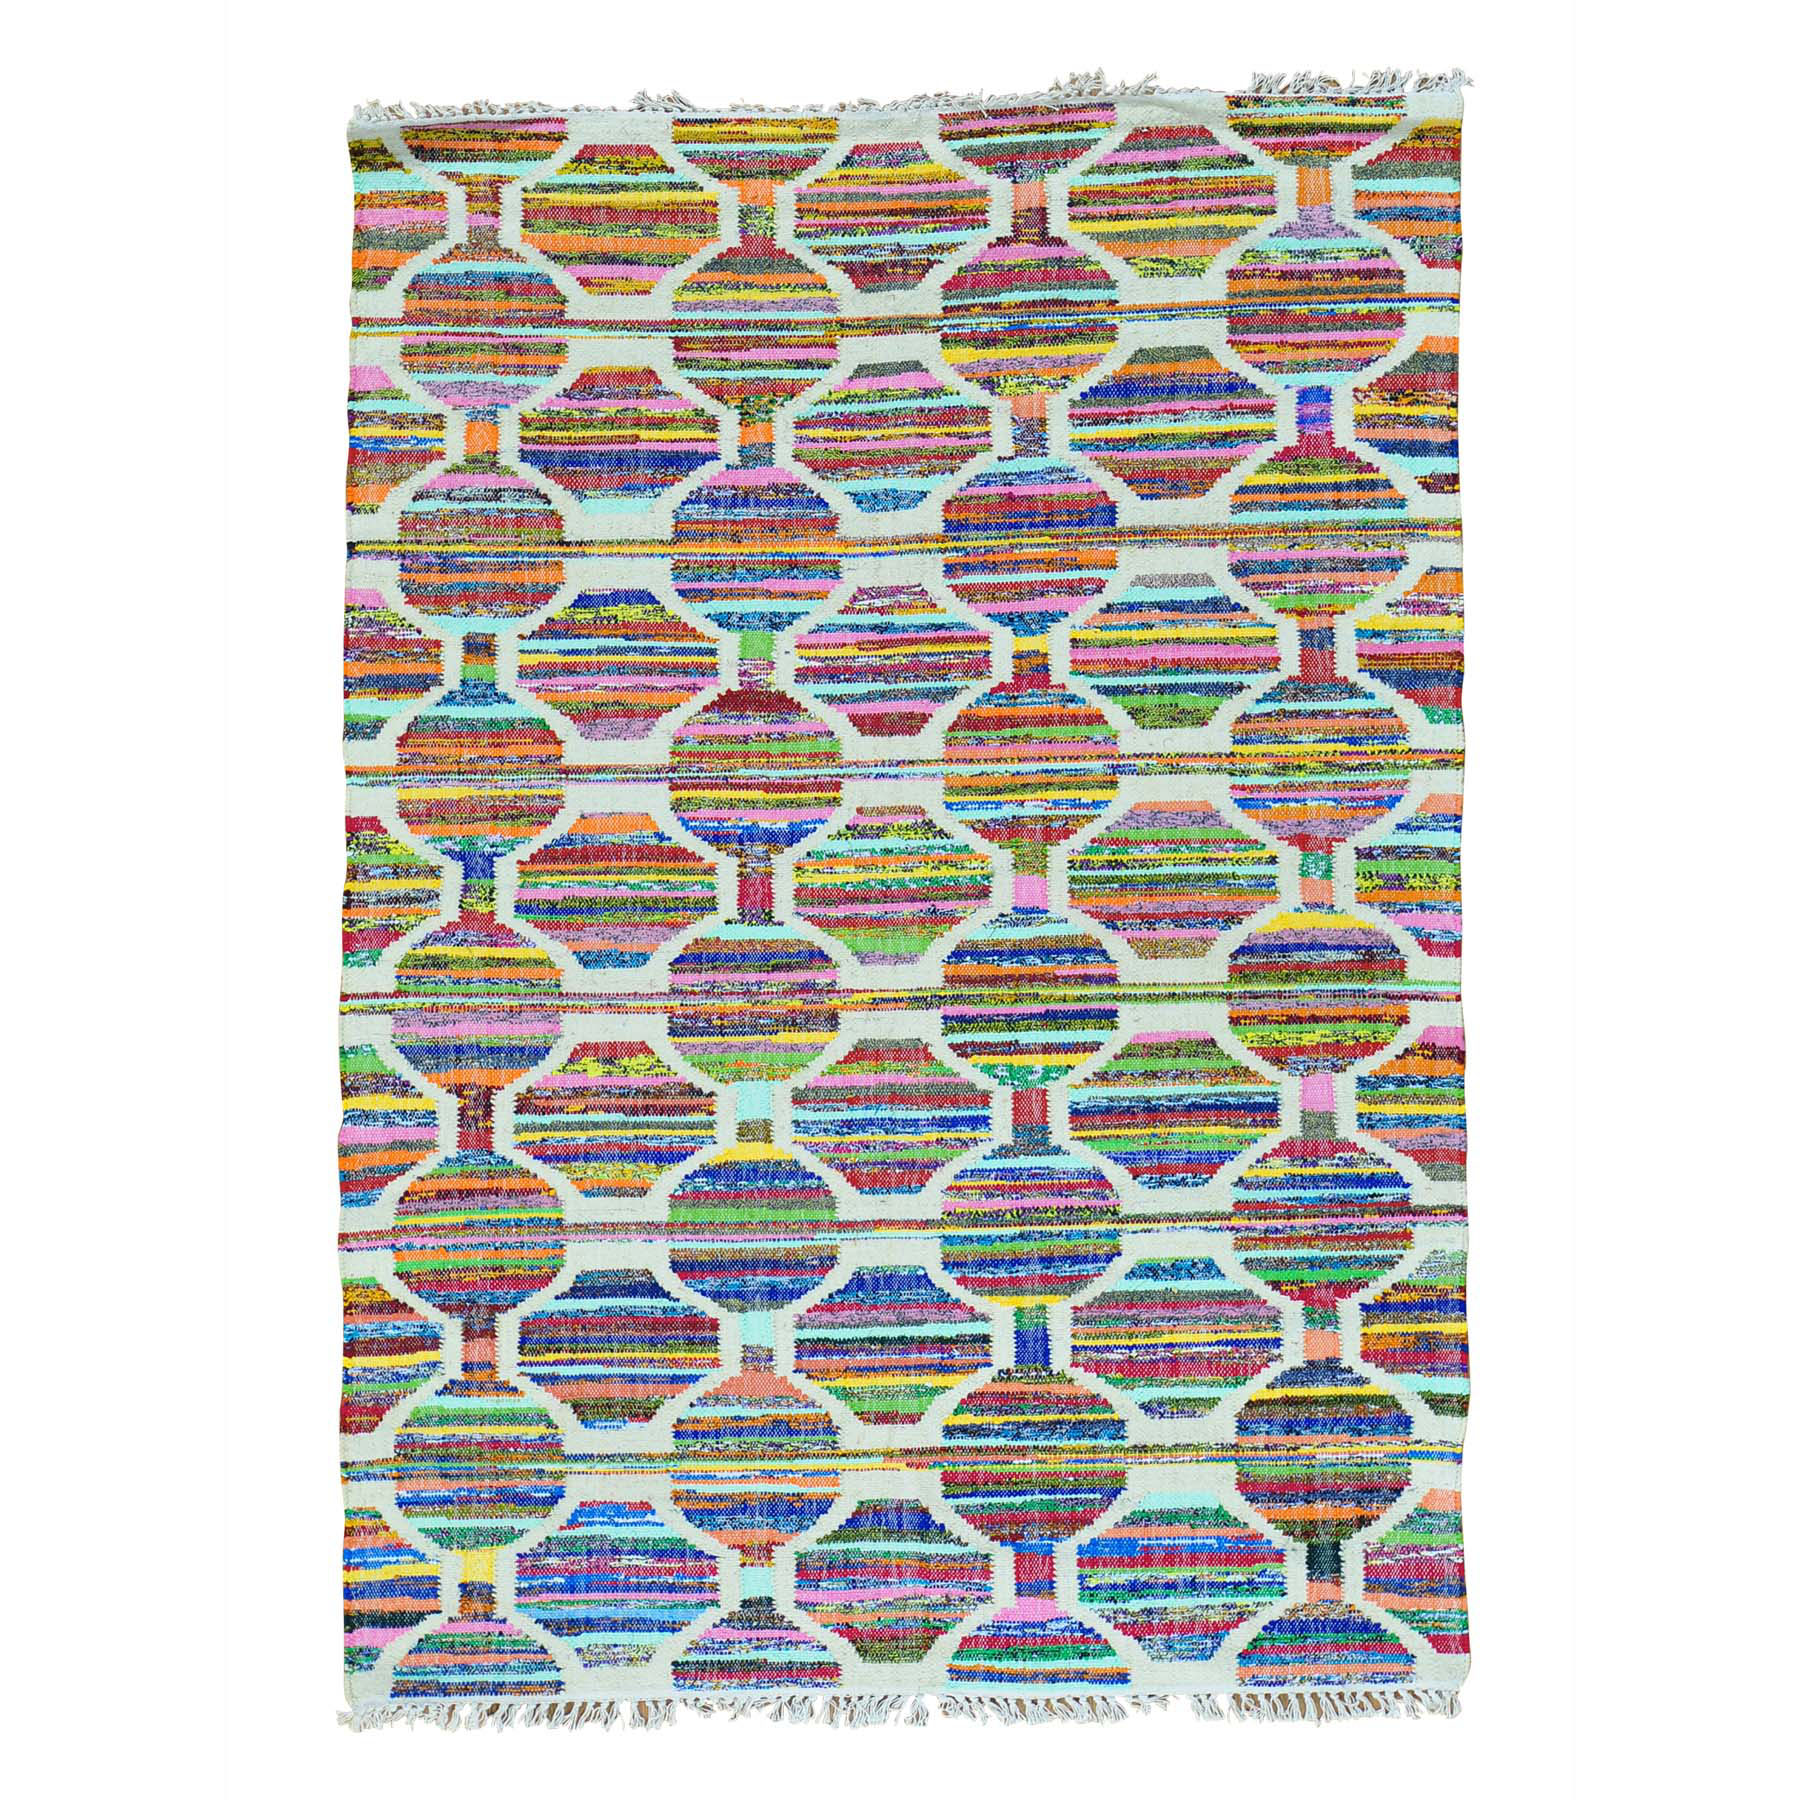 5'x7' Geometric Flat Weave Kilim Cotton And Sari Silk Hand Woven Rug